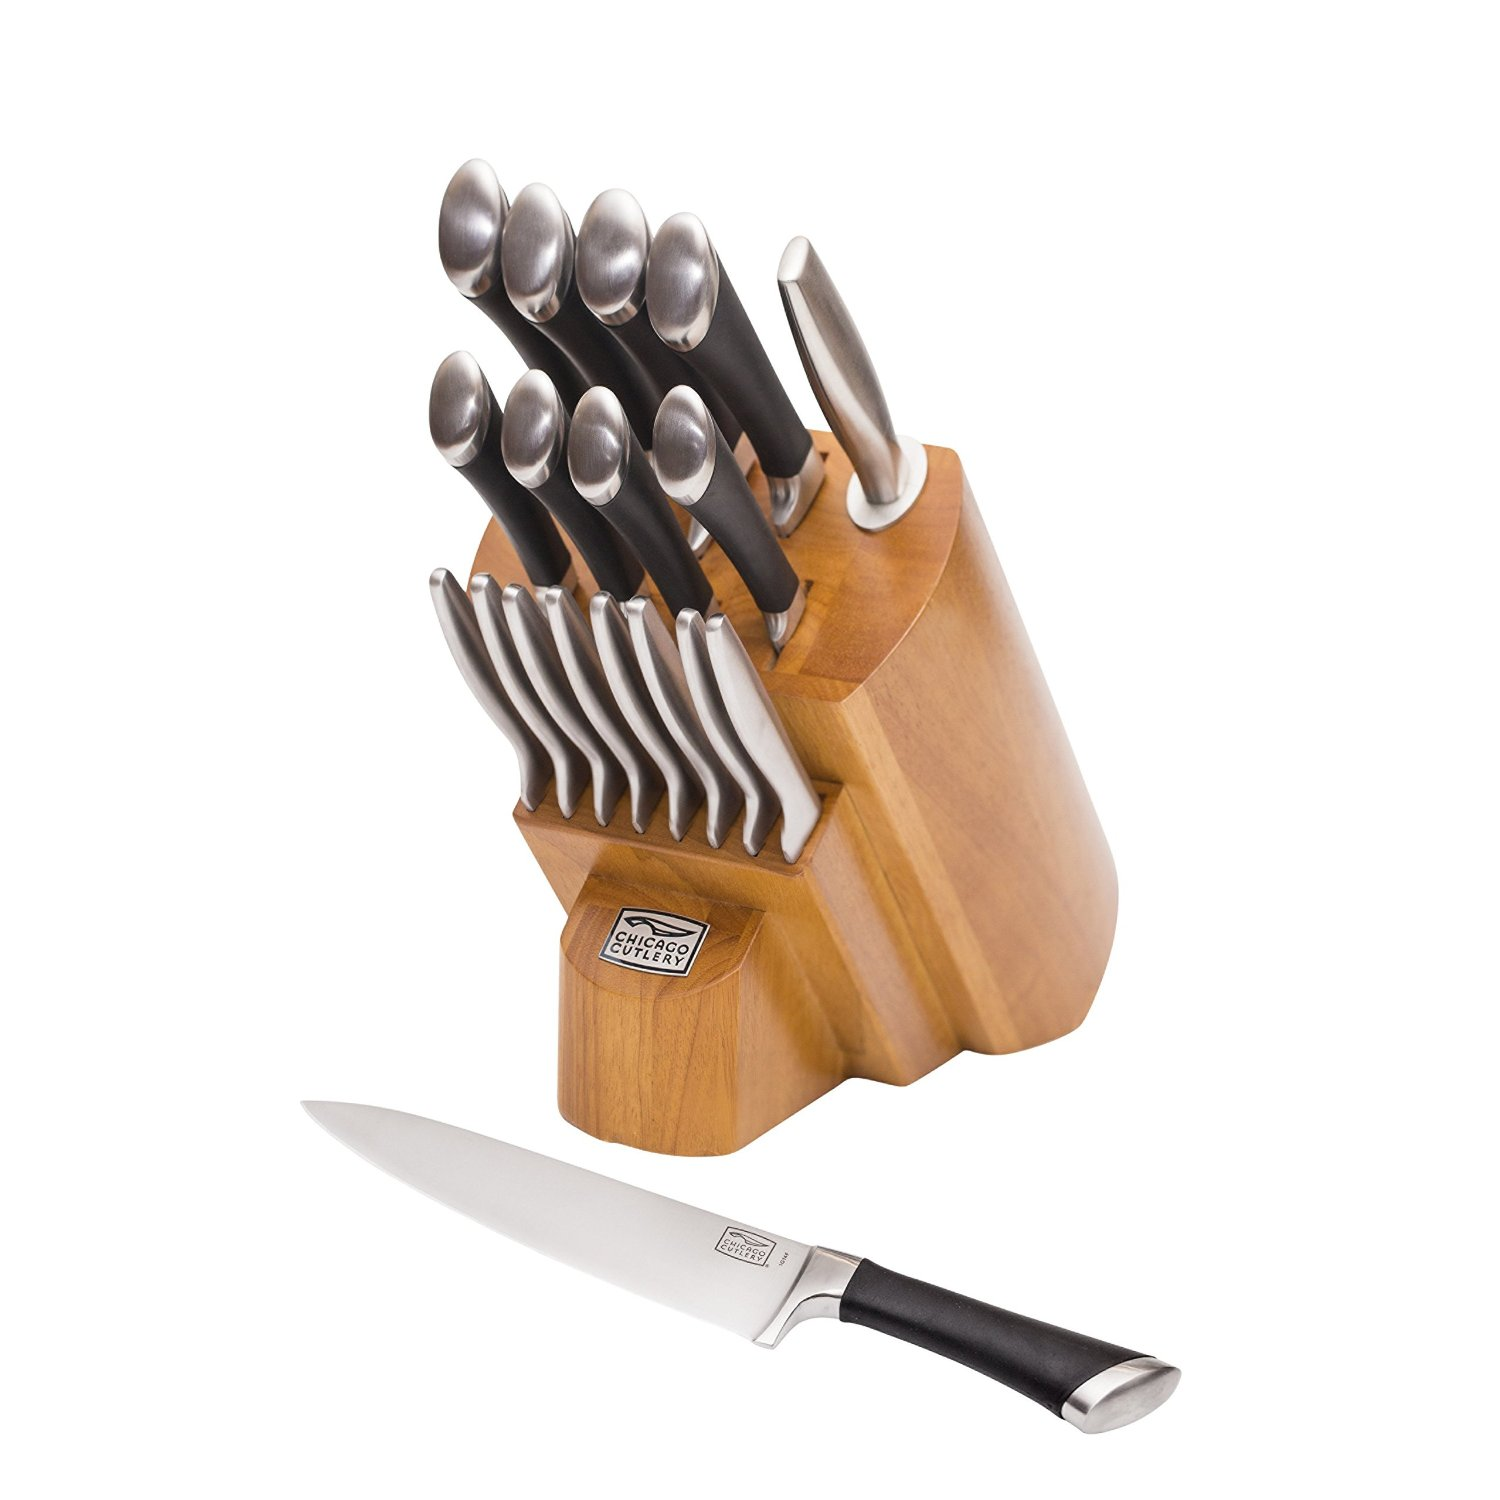 Chicago Cutlery Fusion Forged 18 Piece Knife Block Set Review